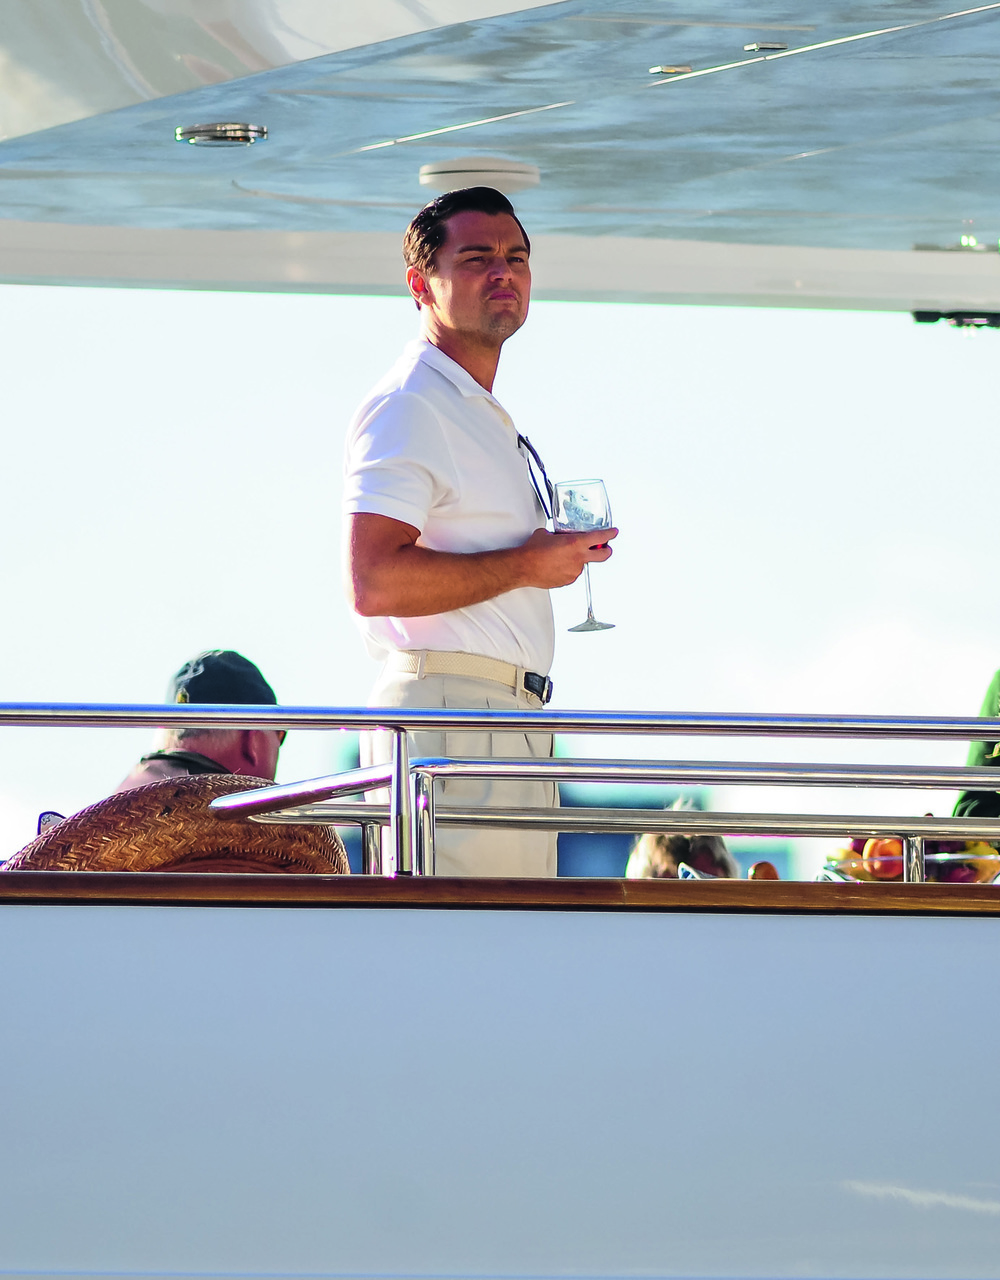 © The Stylish Life - Yachting, published by teNeues, www.teneues.com. Leonardo DiCaprio films The Wolf of Wall Street with Martin Scorsese on a yacht in New York City, Photo © J.B. Nicholas/Splash News/Corbis.